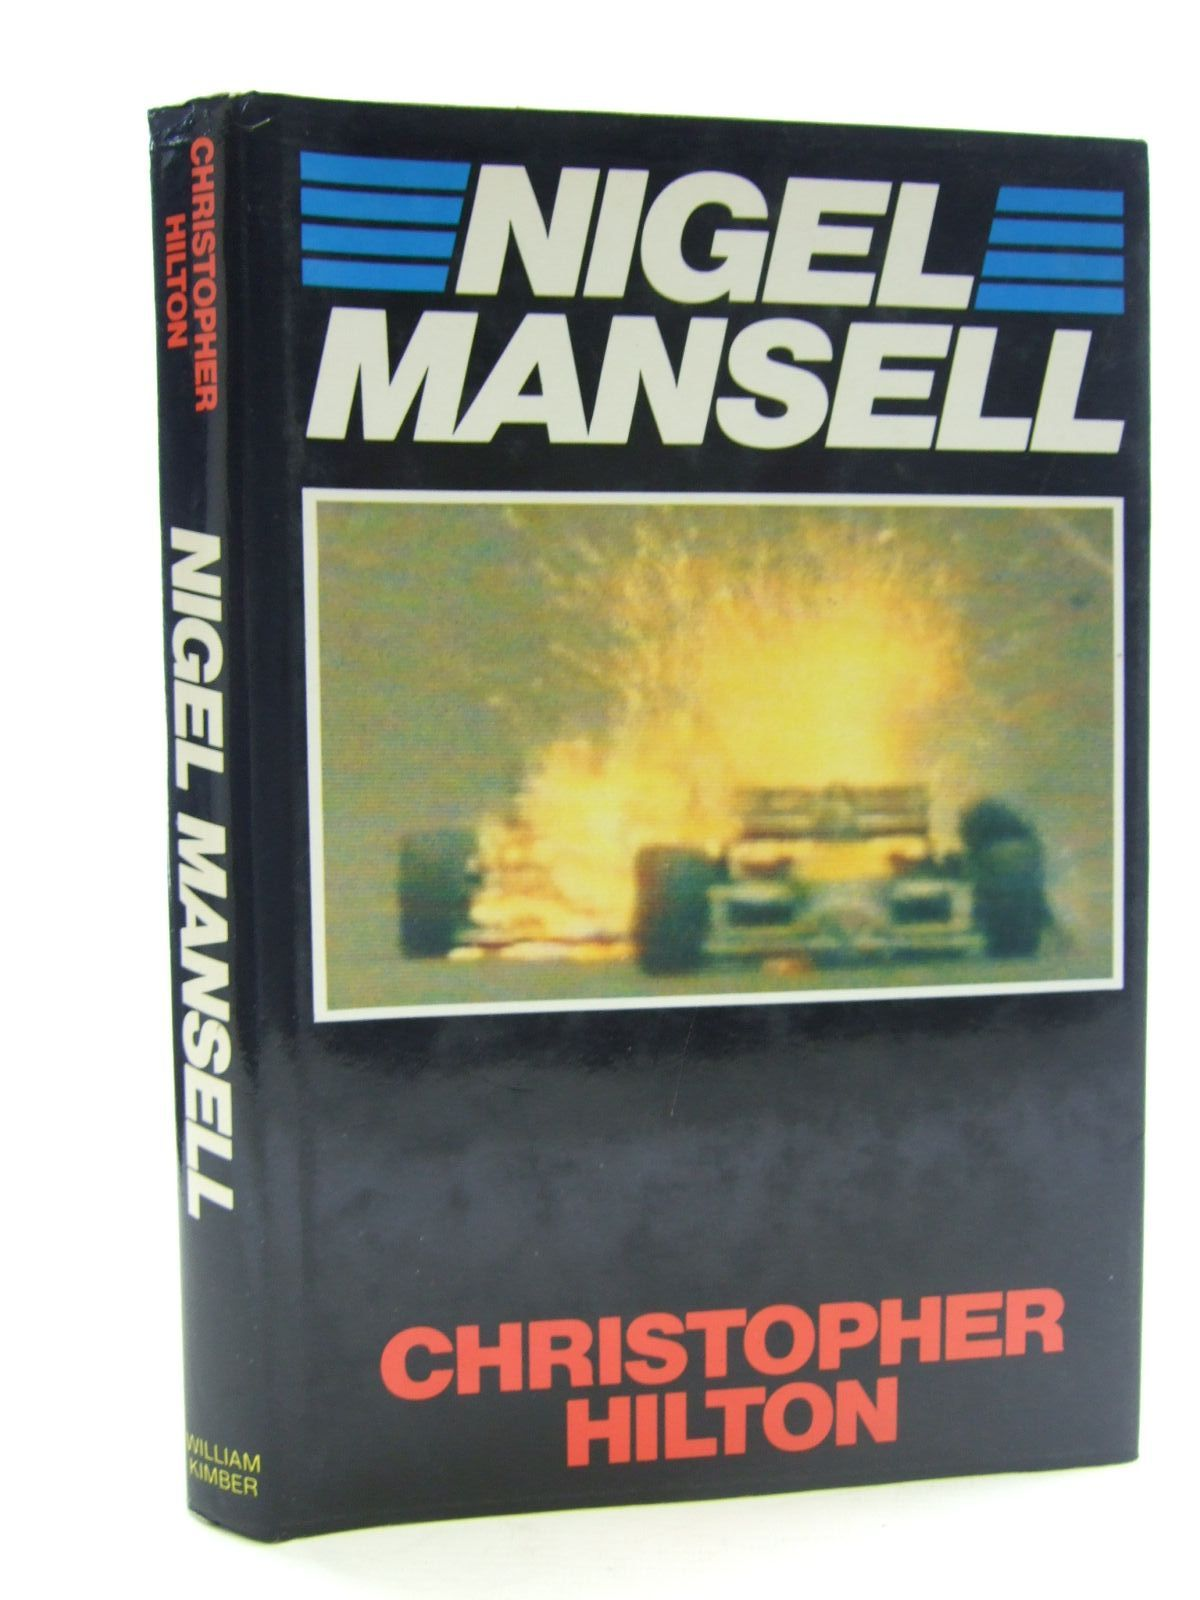 Photo of NIGEL MANSELL written by Hilton, Christopher published by William Kimber (STOCK CODE: 2107367)  for sale by Stella & Rose's Books